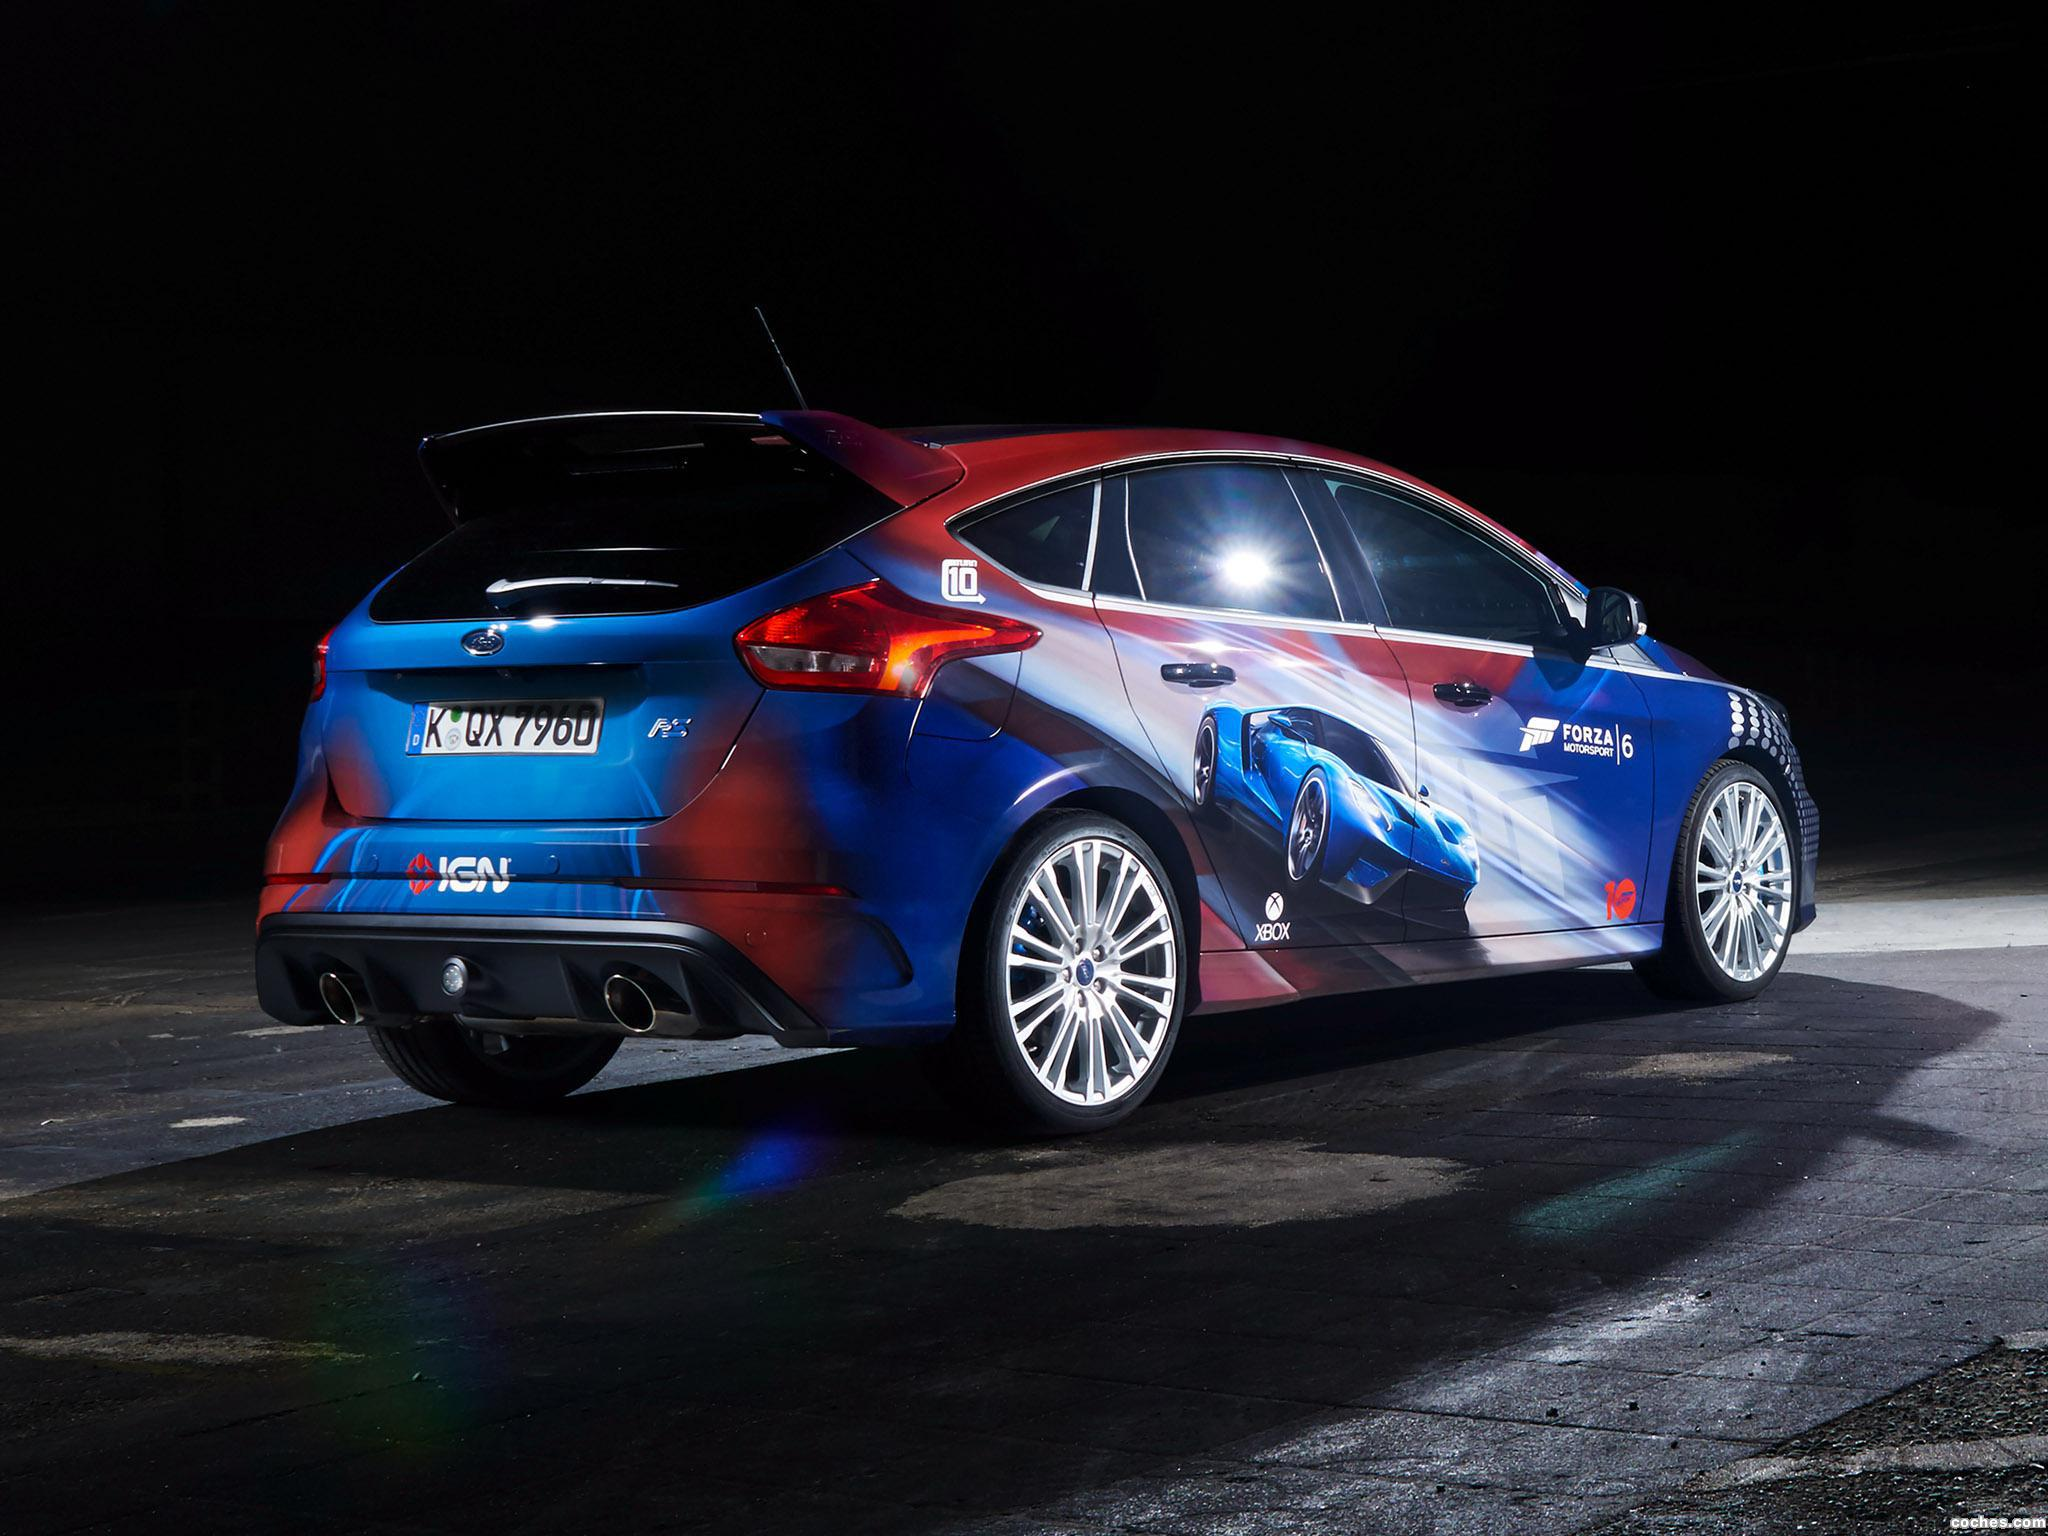 Foto 2 de Ford Focus Forza RS 2015